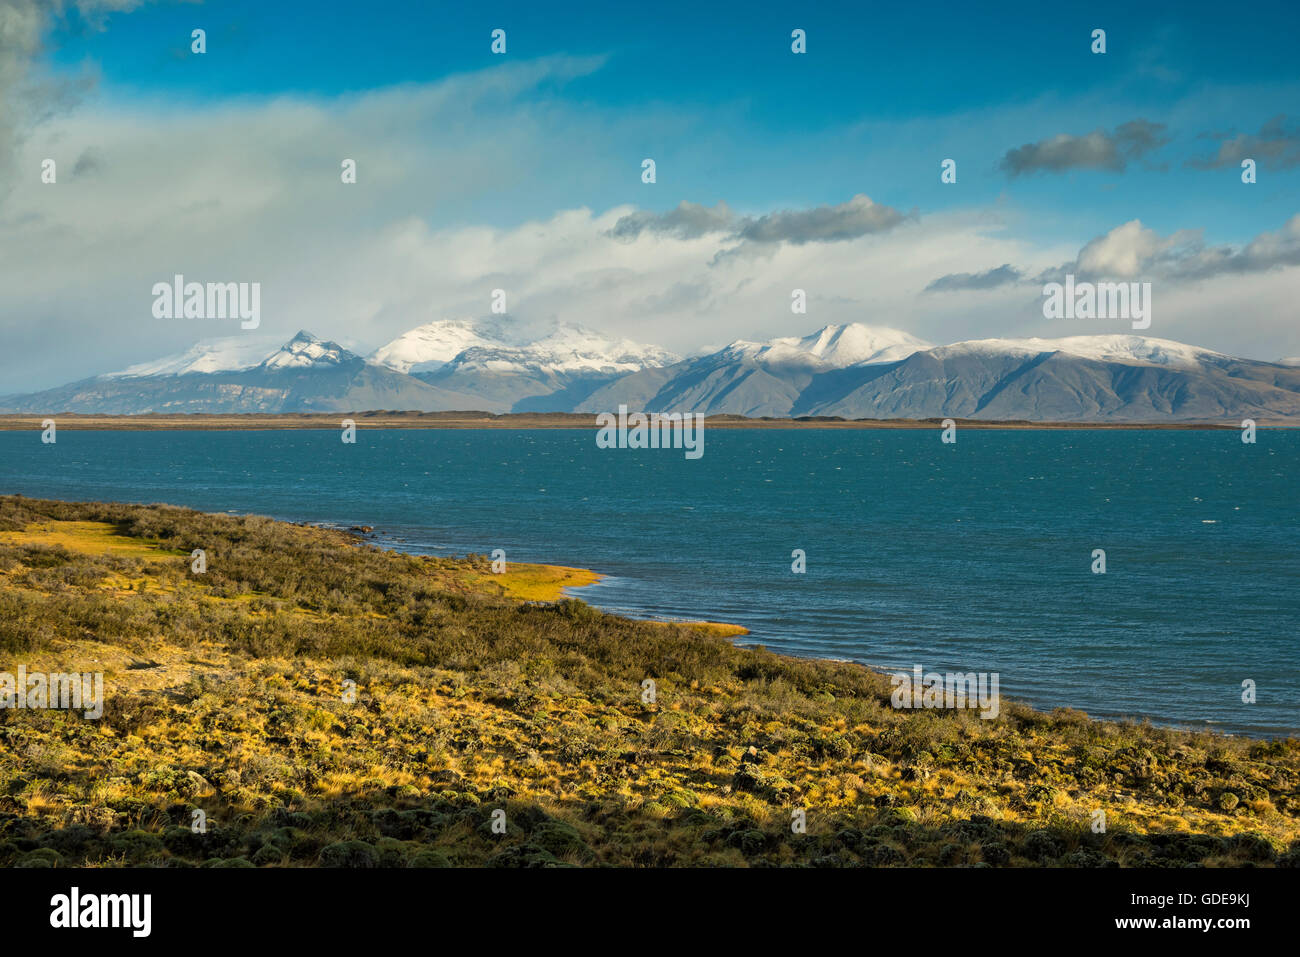 South America,Argentina,Patagonia,Santa Cruz,Puerta Bandera,Lago Argentino Stock Photo